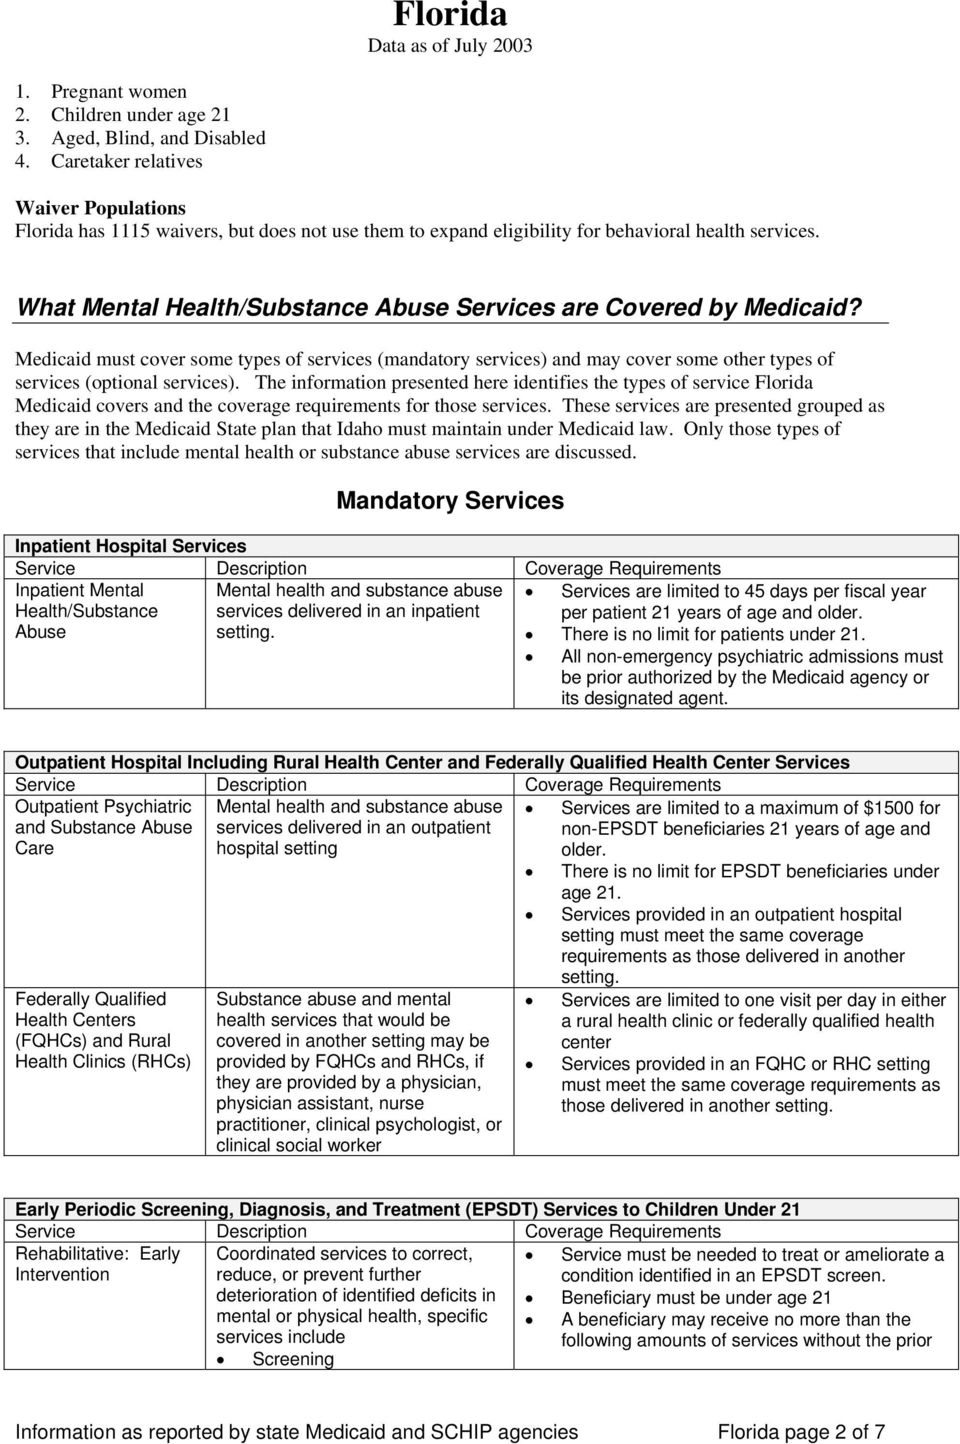 What Mental Health/Substance Abuse Services are Covered by Medicaid? Medicaid must cover some types of services (mandatory services) and may cover some other types of services (optional services).